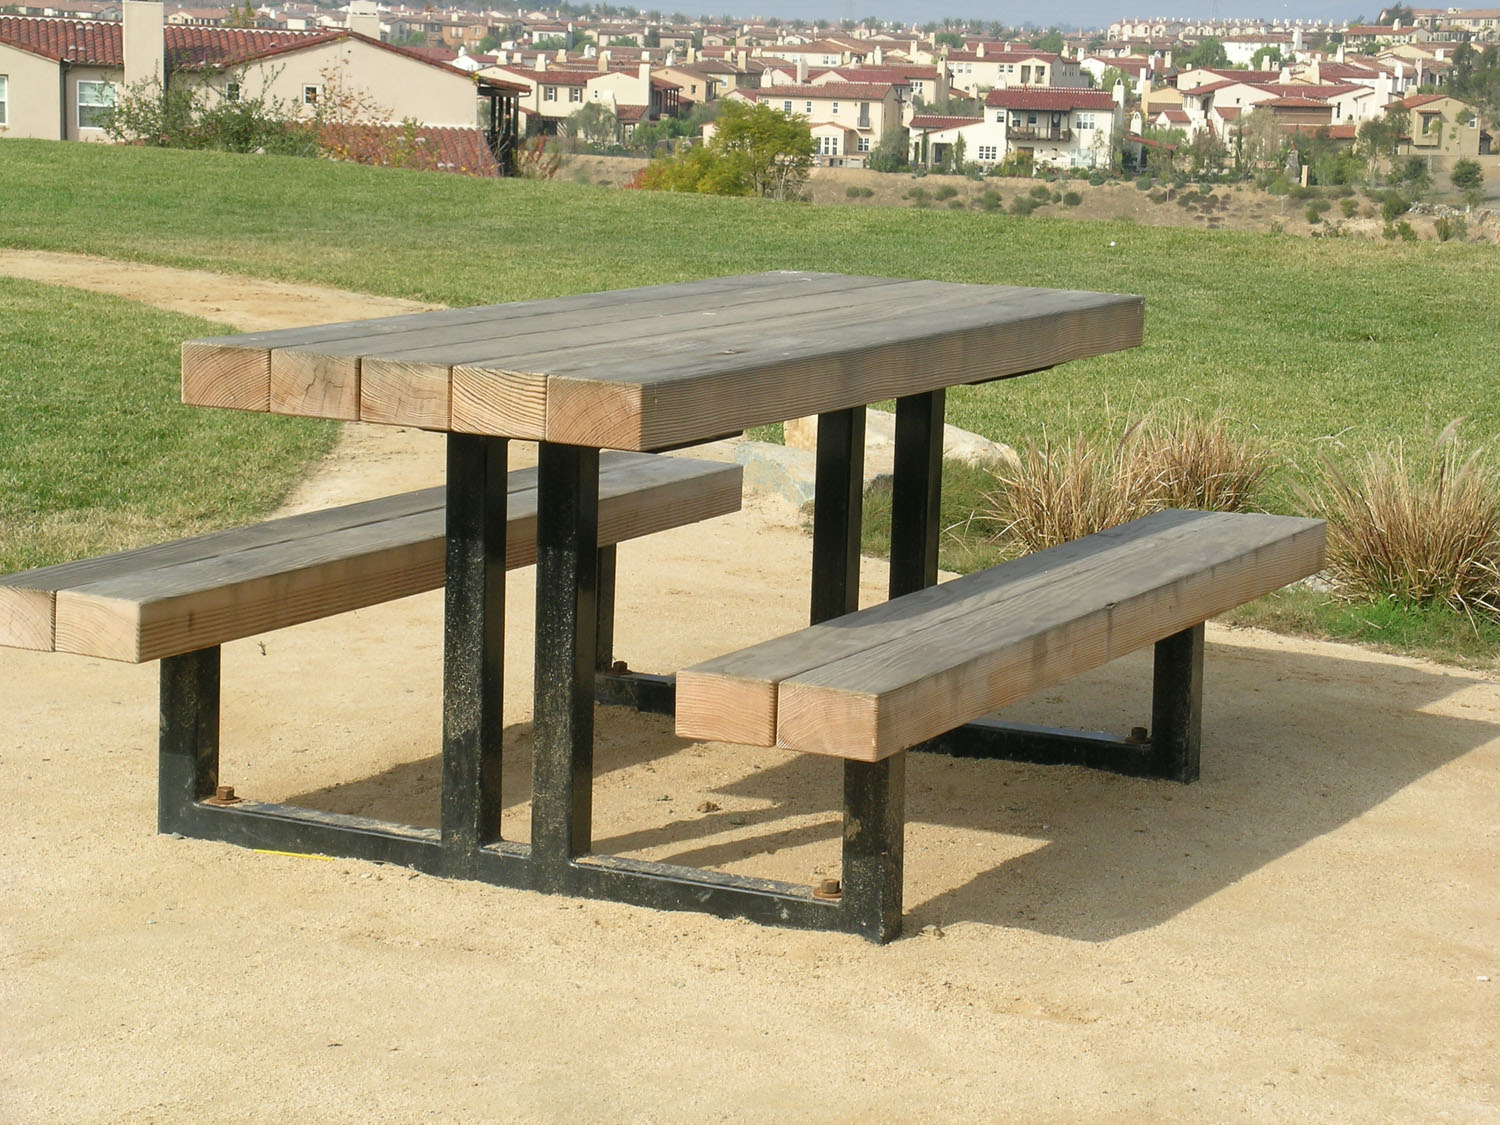 Timberform site furnishings for Table design outdoor